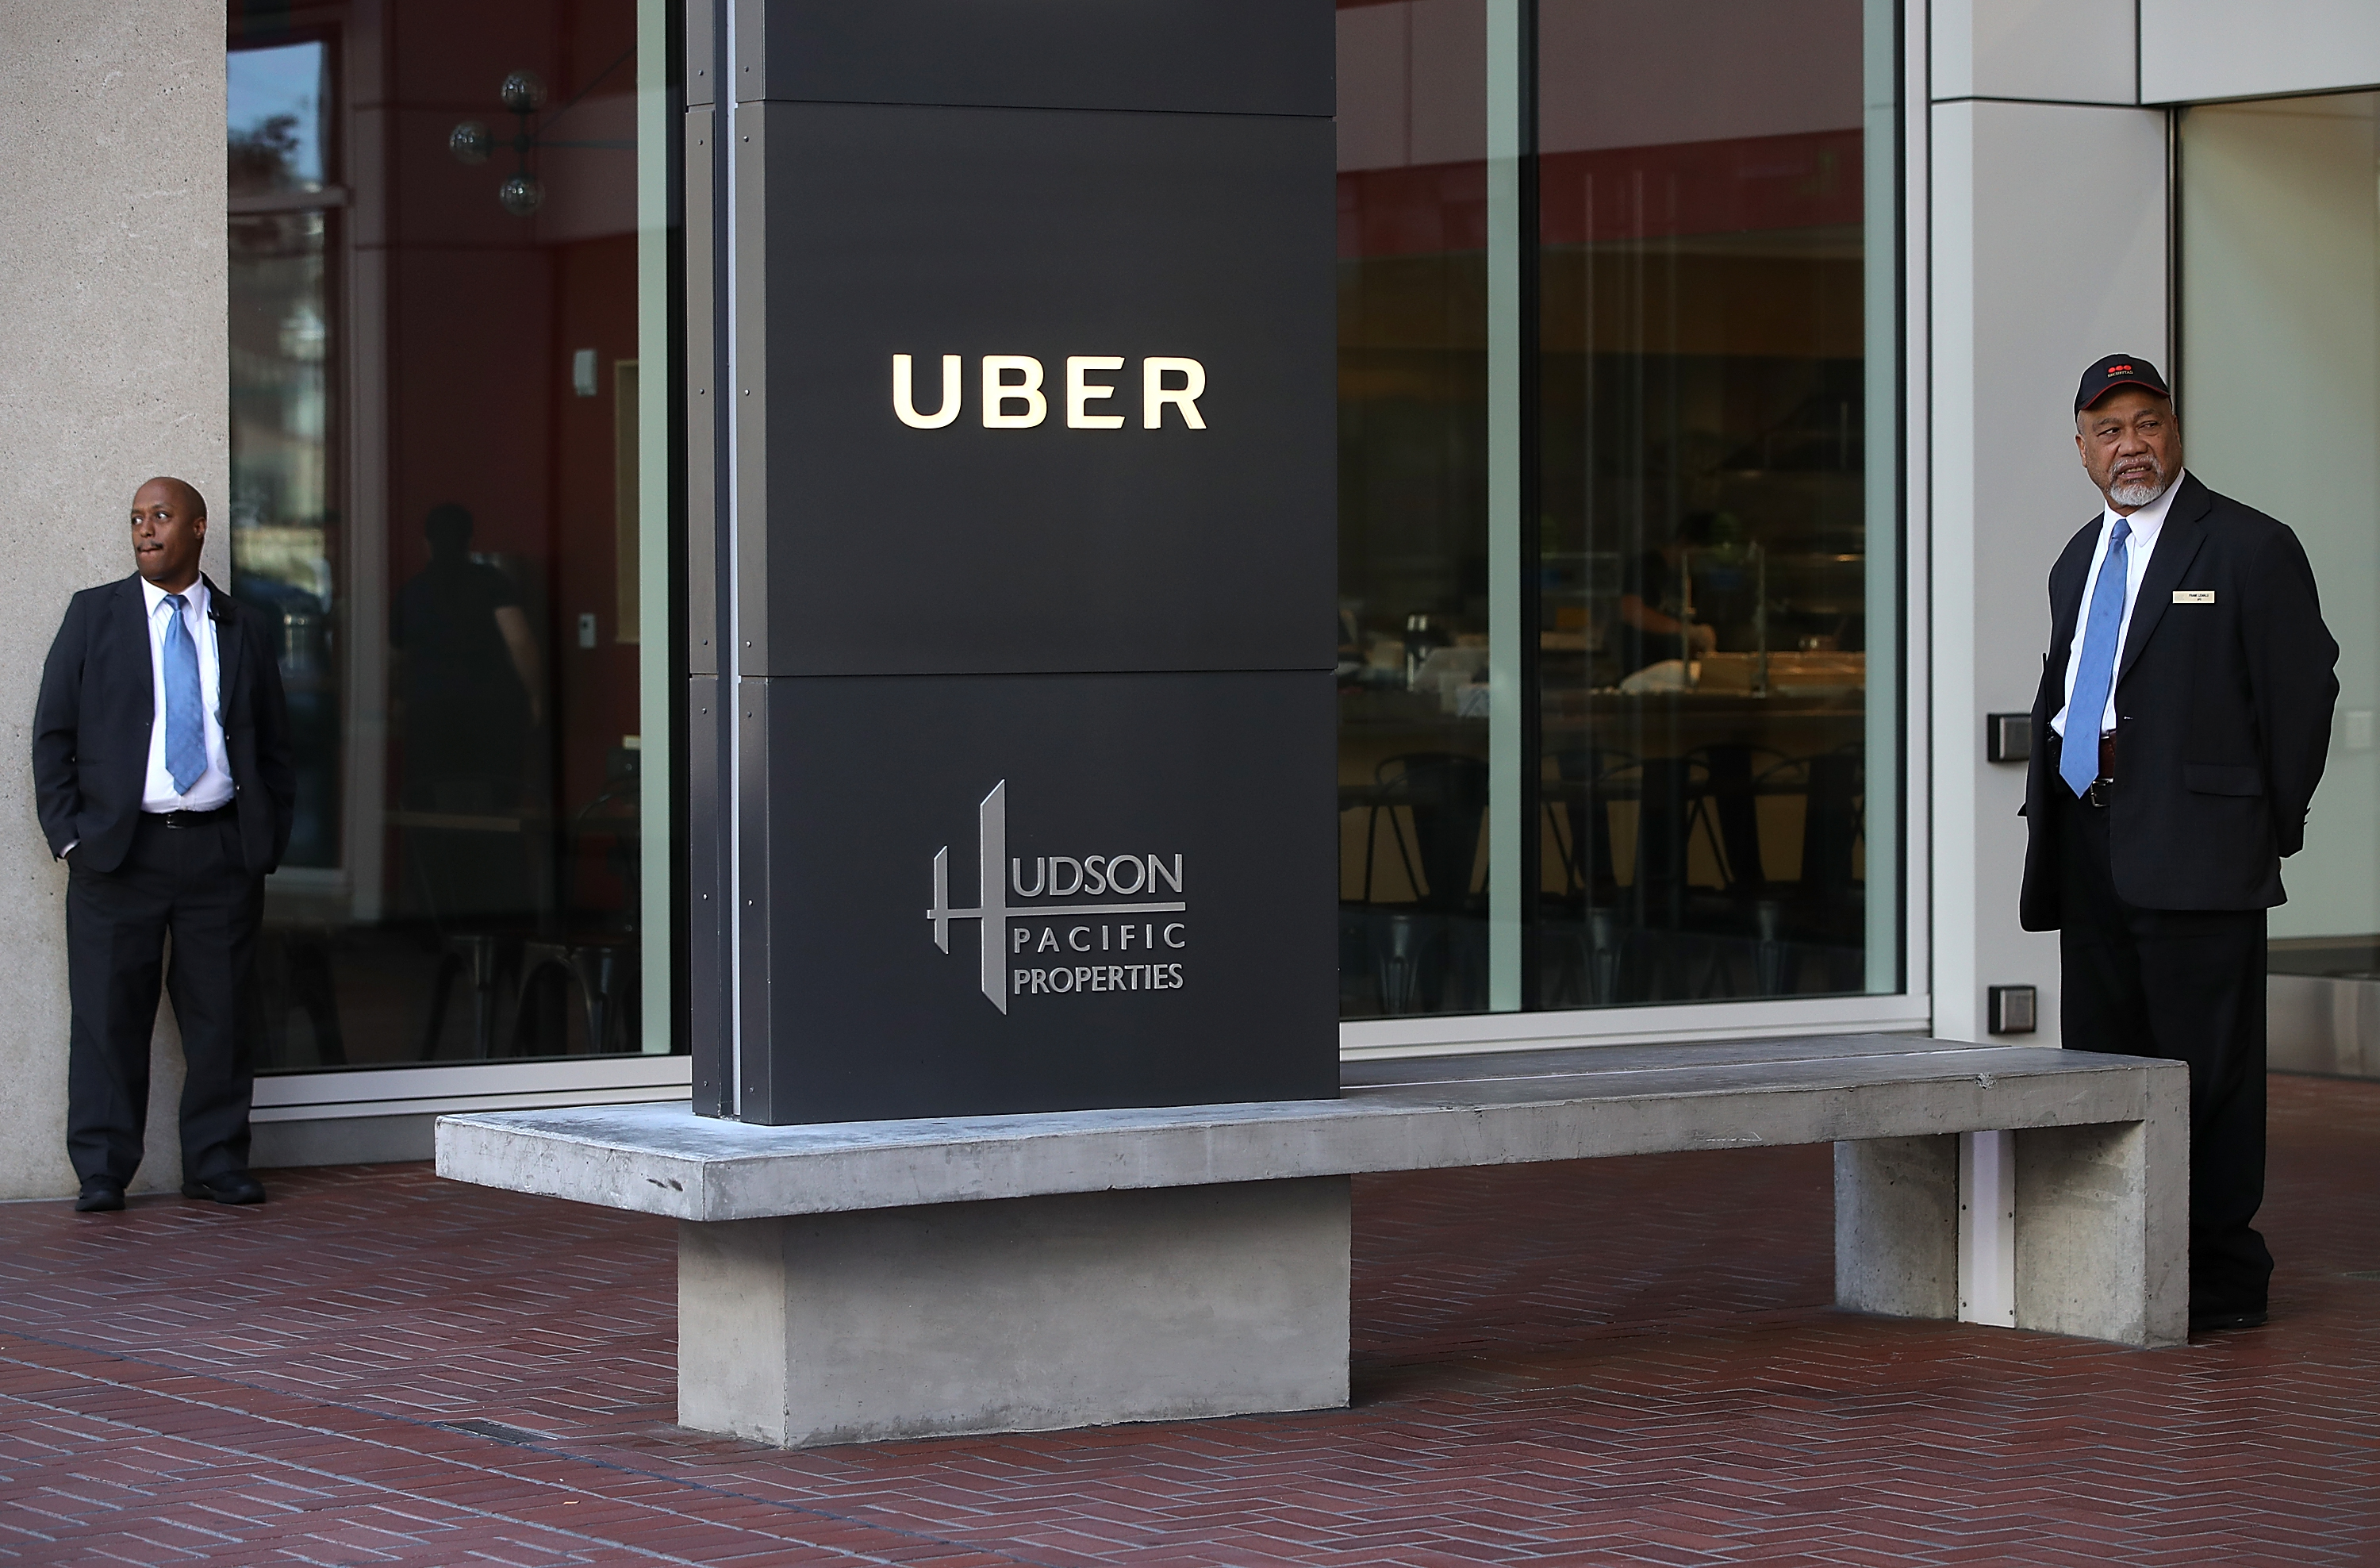 The Uber sign outside Uber headquarters in San Francisco